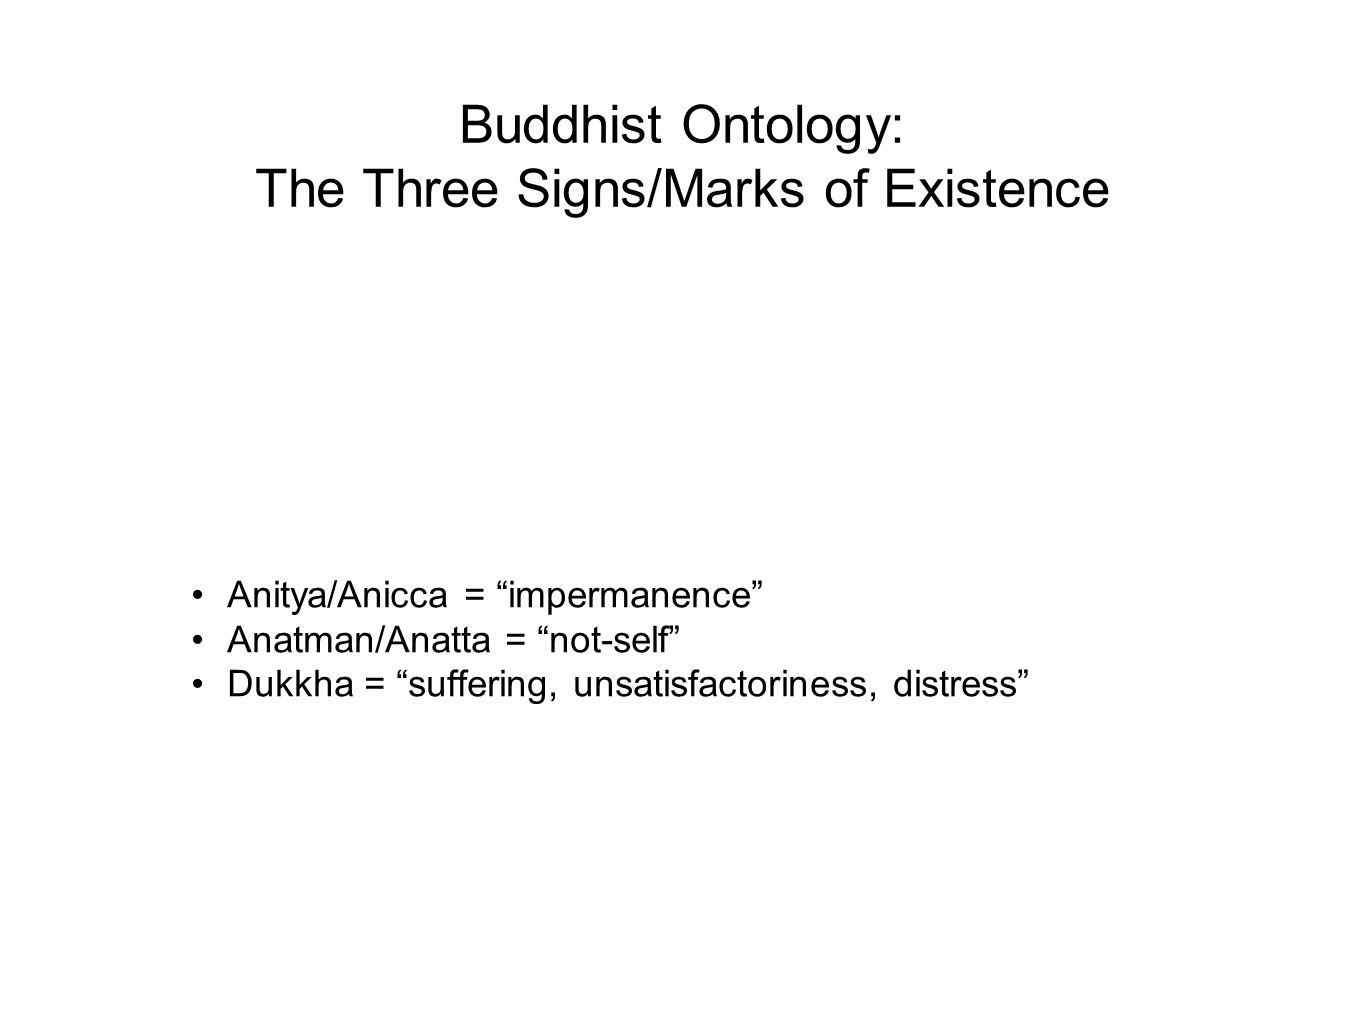 The Four Noble Truths Dukkha (= suffering, unsatisfactoriness, distress) The Cause of Dukkha (= thirst, craving, attachment, excessive desire) The Cessation of Dukkha (= Nirvana/Nibbana, blowing out ) The Way leading to the Cessation of Dukkha (= The Noble Eightfold Path)